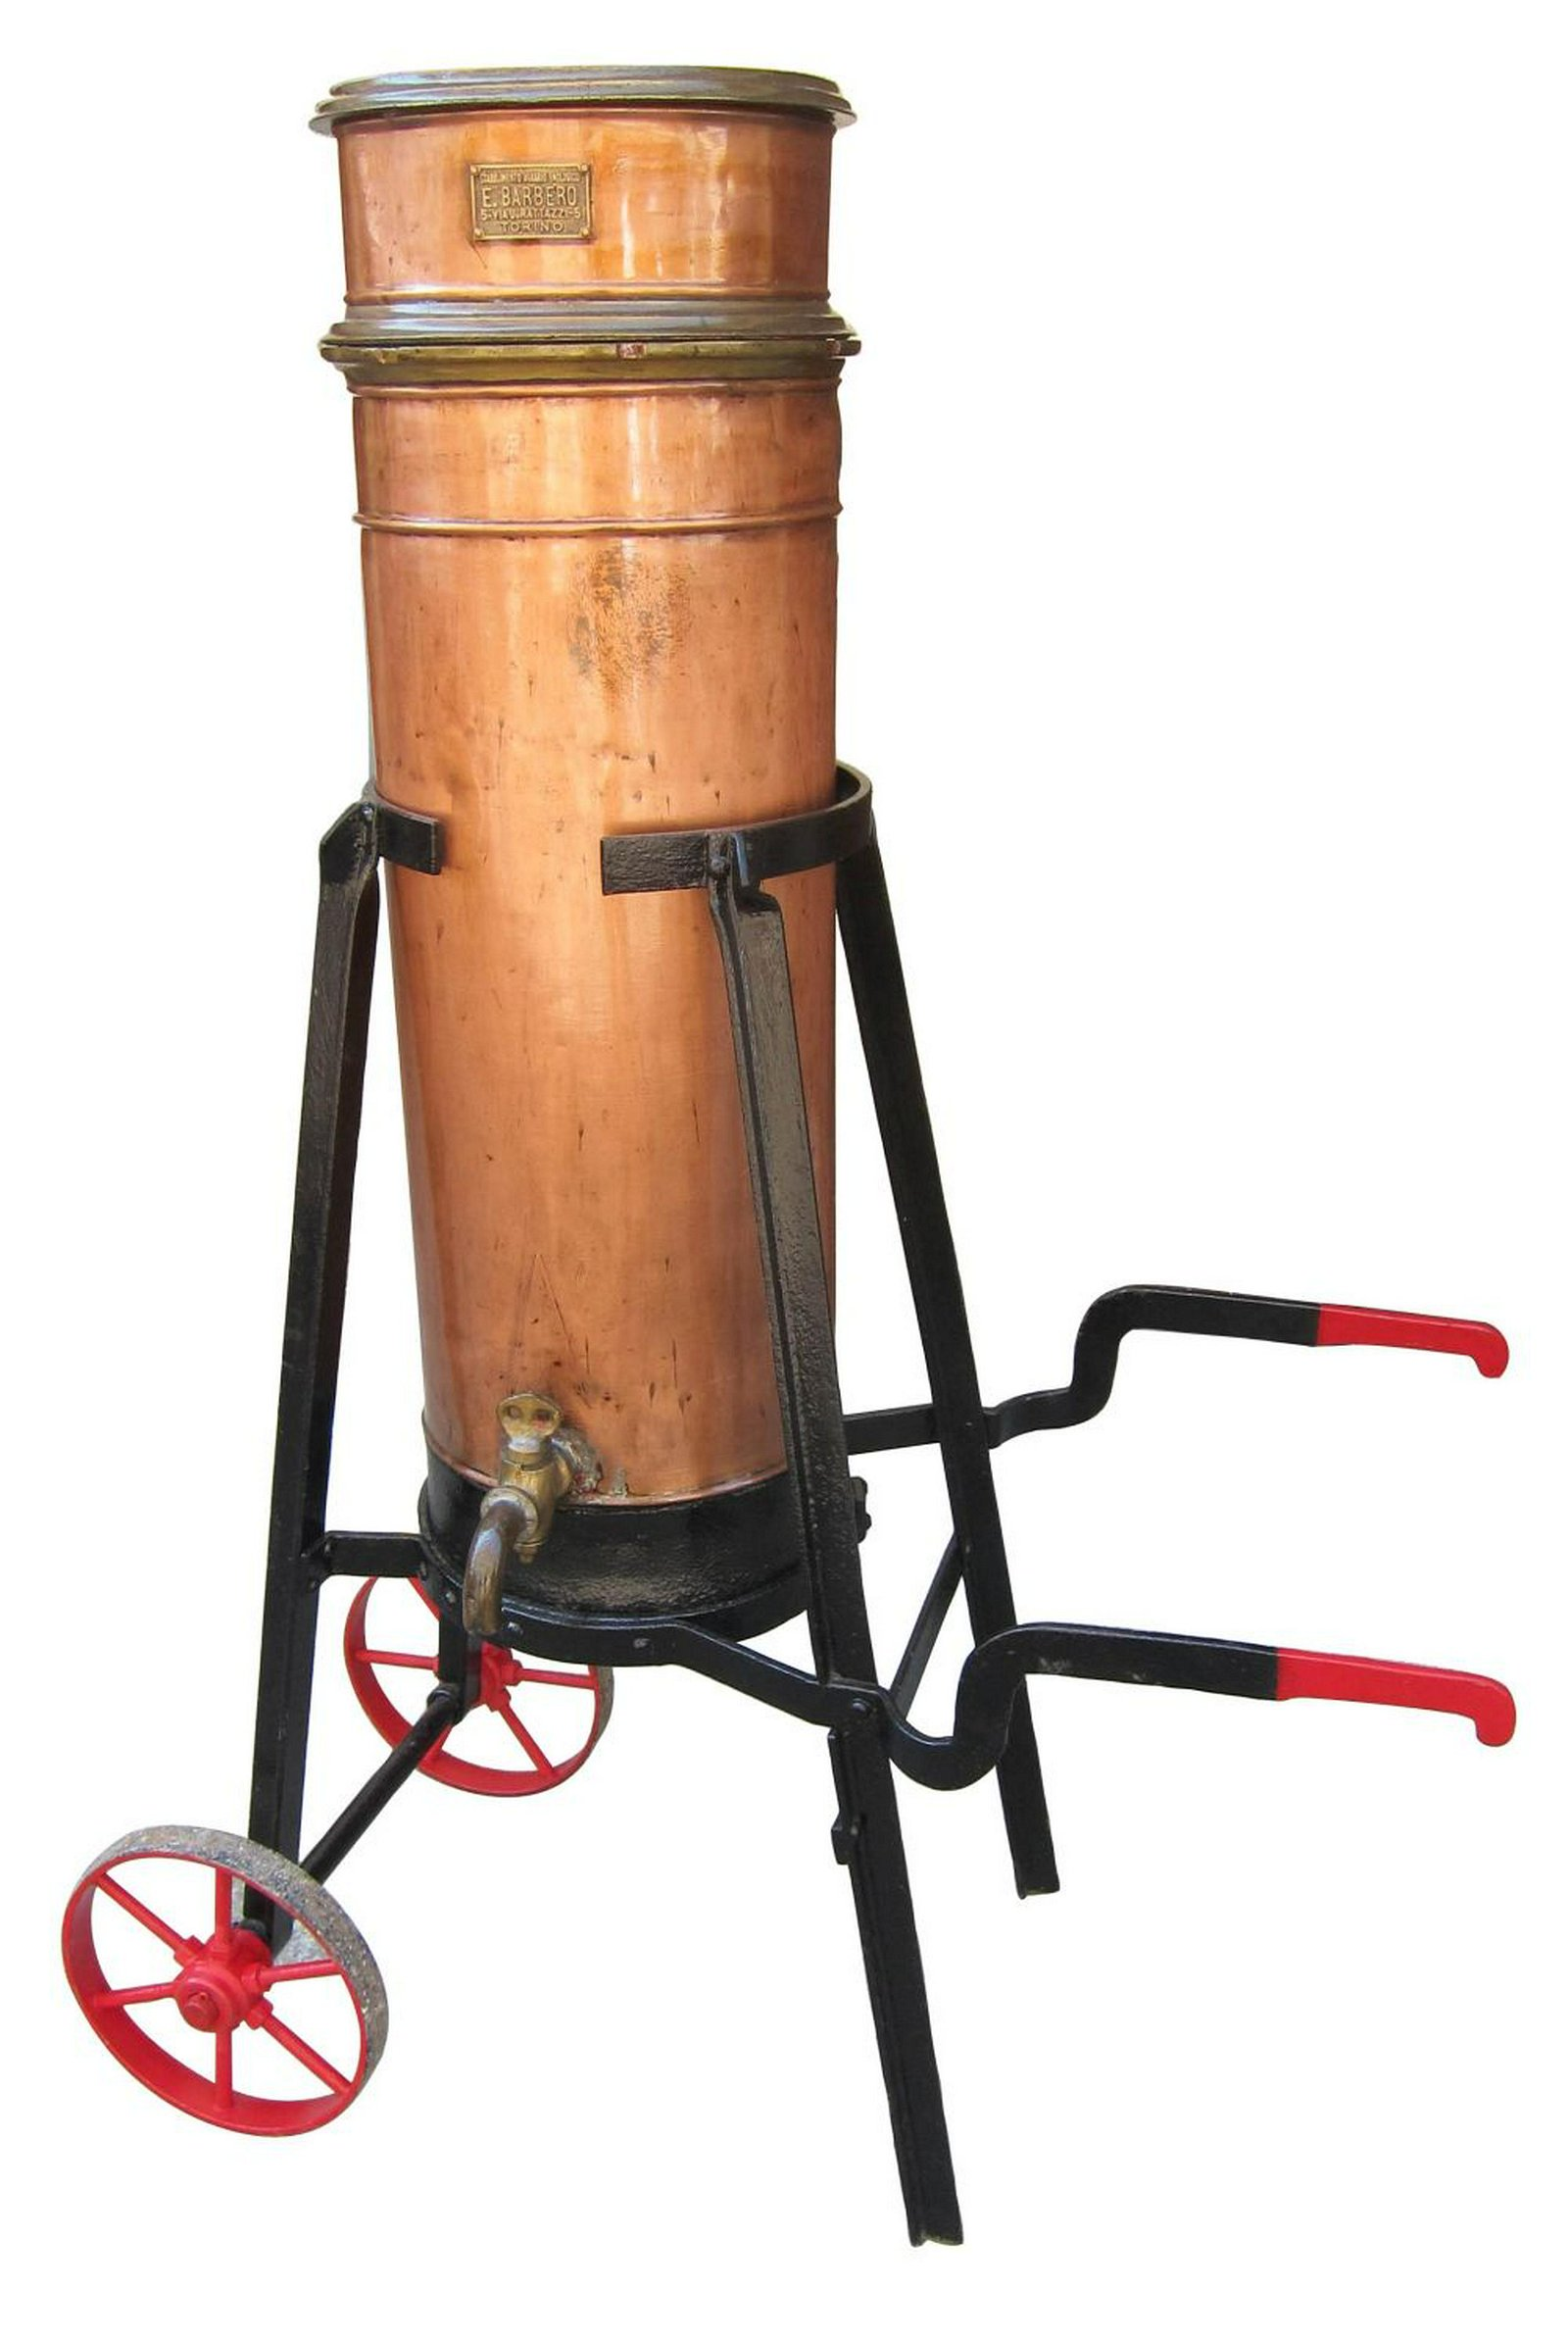 Antique copper and iron wine filter